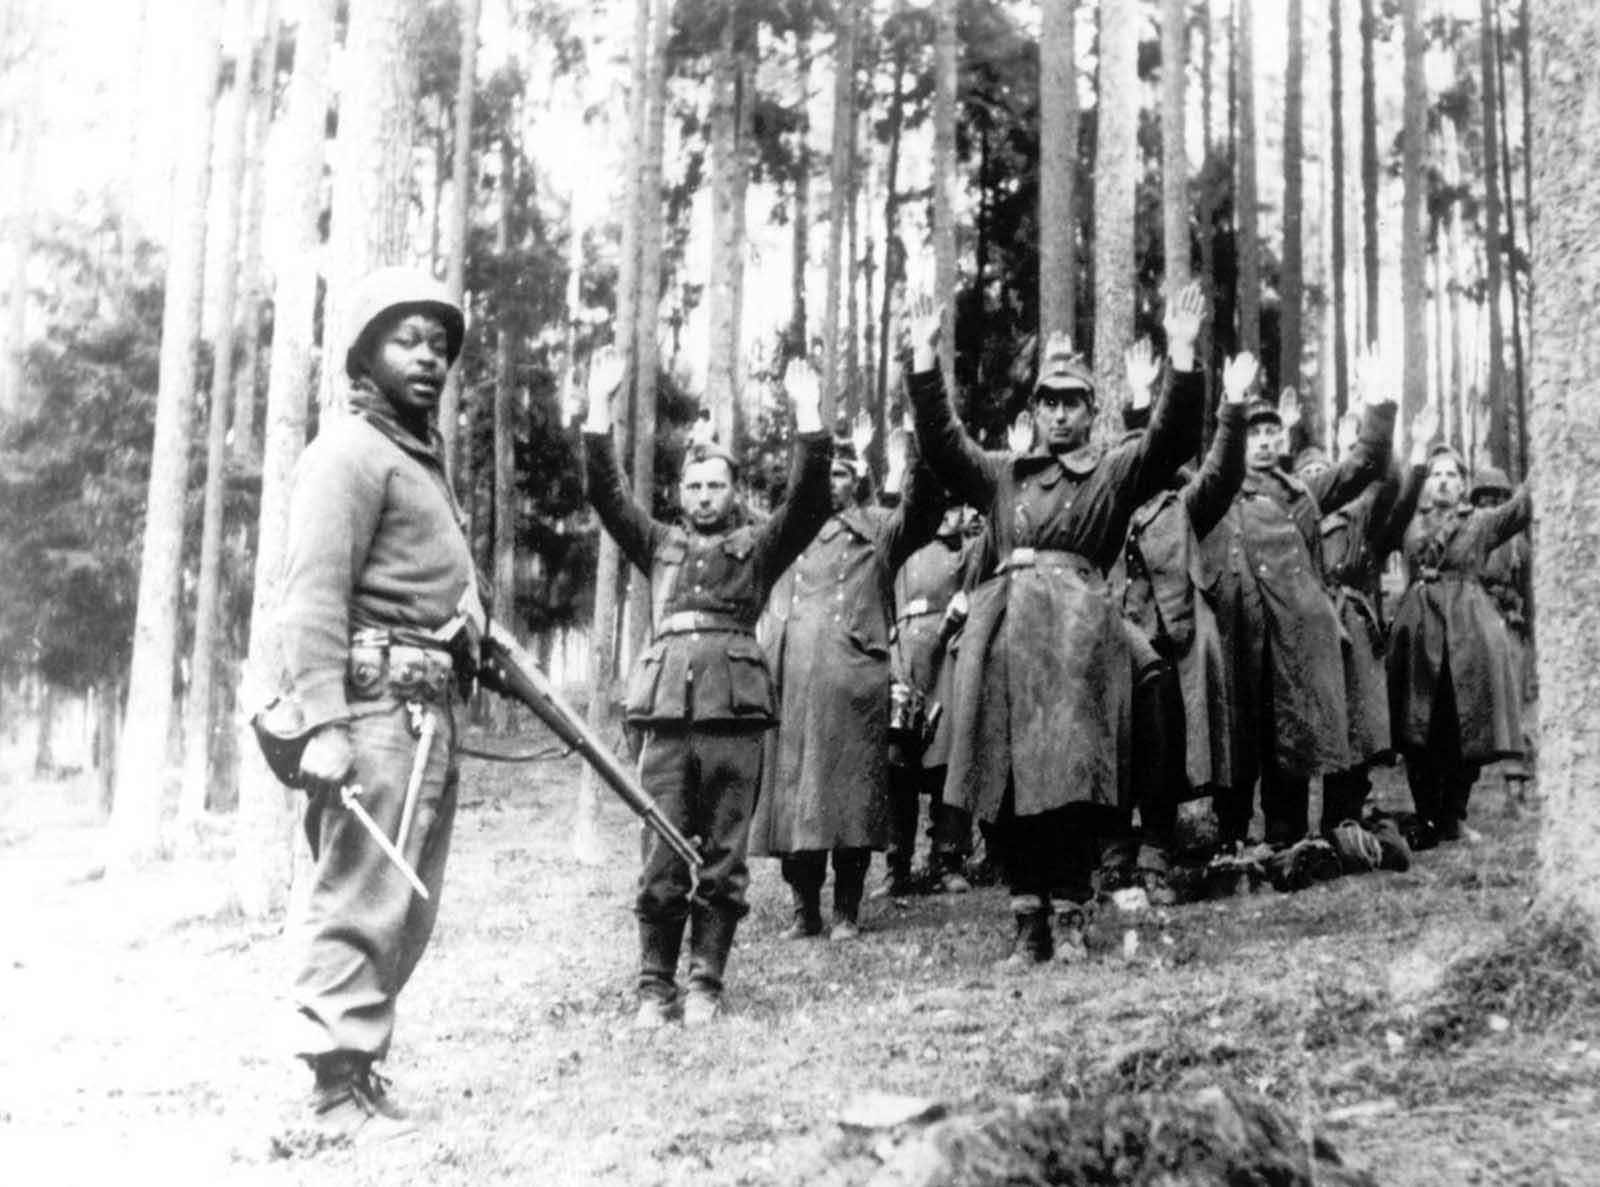 An American soldier of the 12th Armored Division stands guard over a group of German soldiers, captured in April 1945, in a forest at an unknown location in Germany.